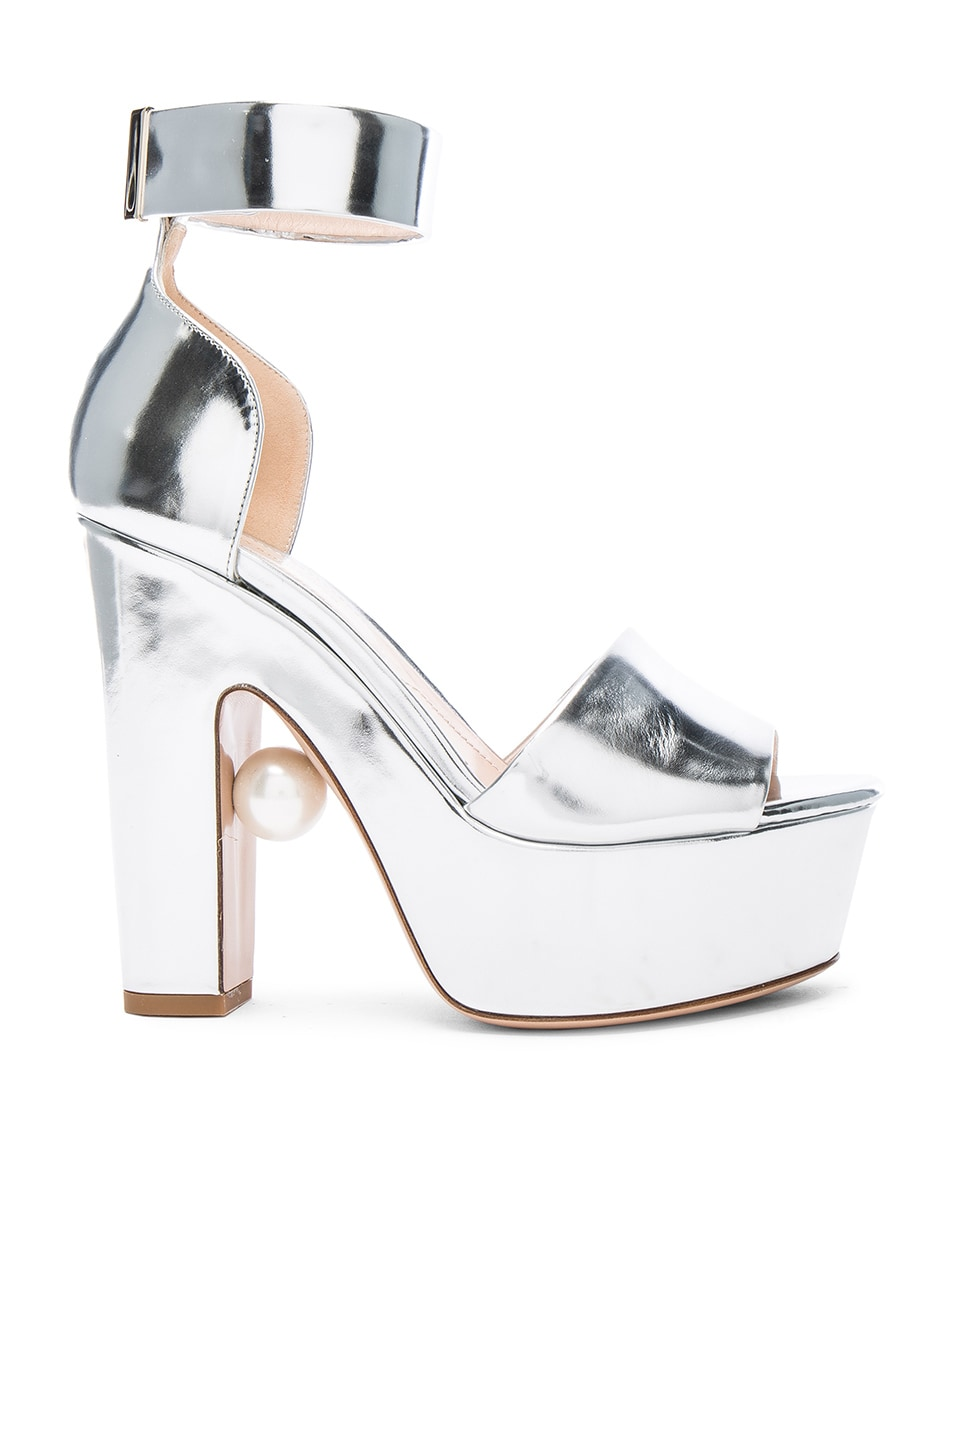 Image 1 of Nicholas Kirkwood Leather Maya Pearl Heels in Silver Metallic